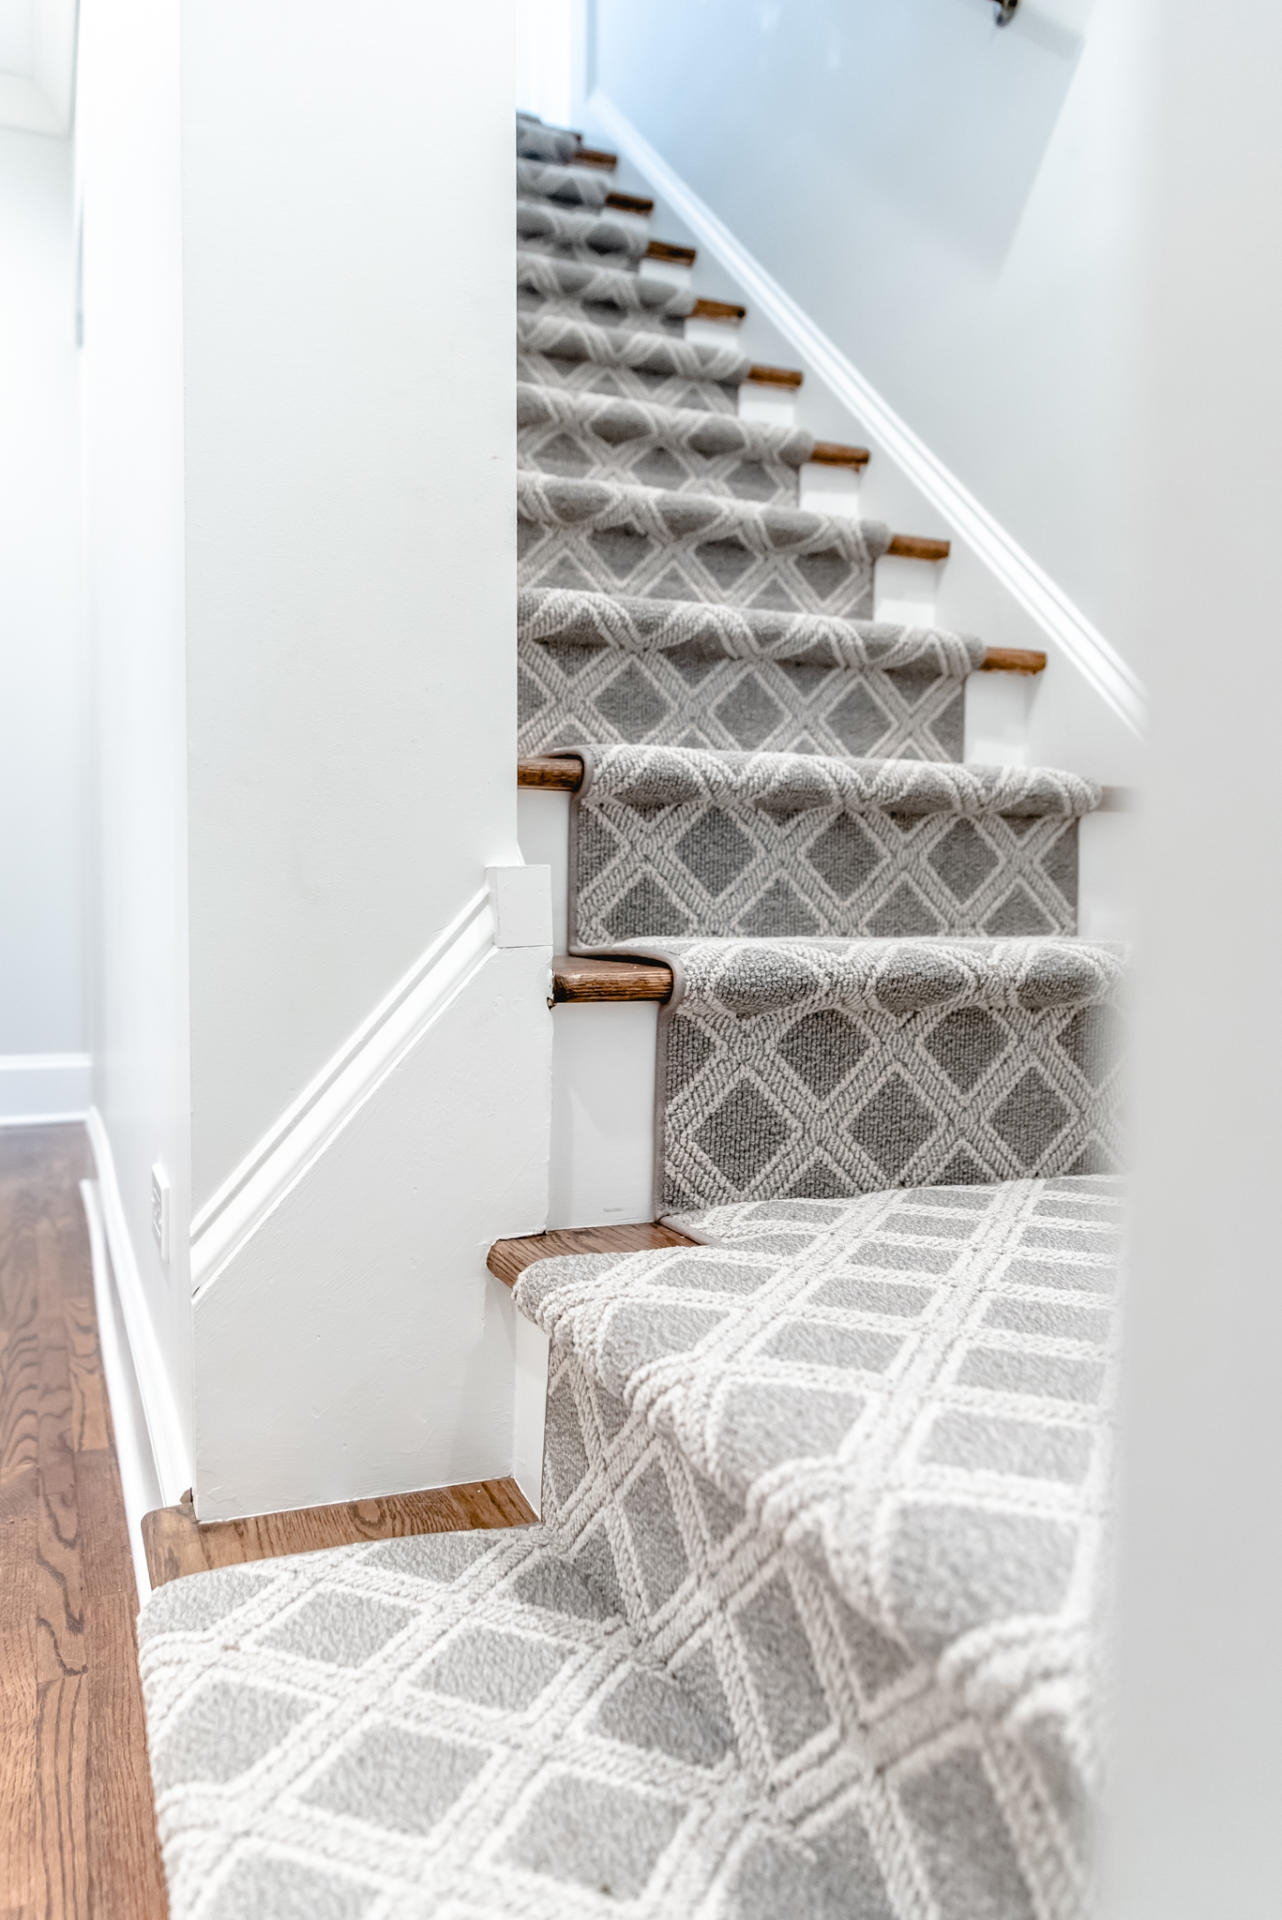 Stair Carpet Gain Inspiration And View Stair Carpet Projects | Carpet Rugs For Stairs | Navy Blue | Beige | Tartan | Wool | Diamond Pattern